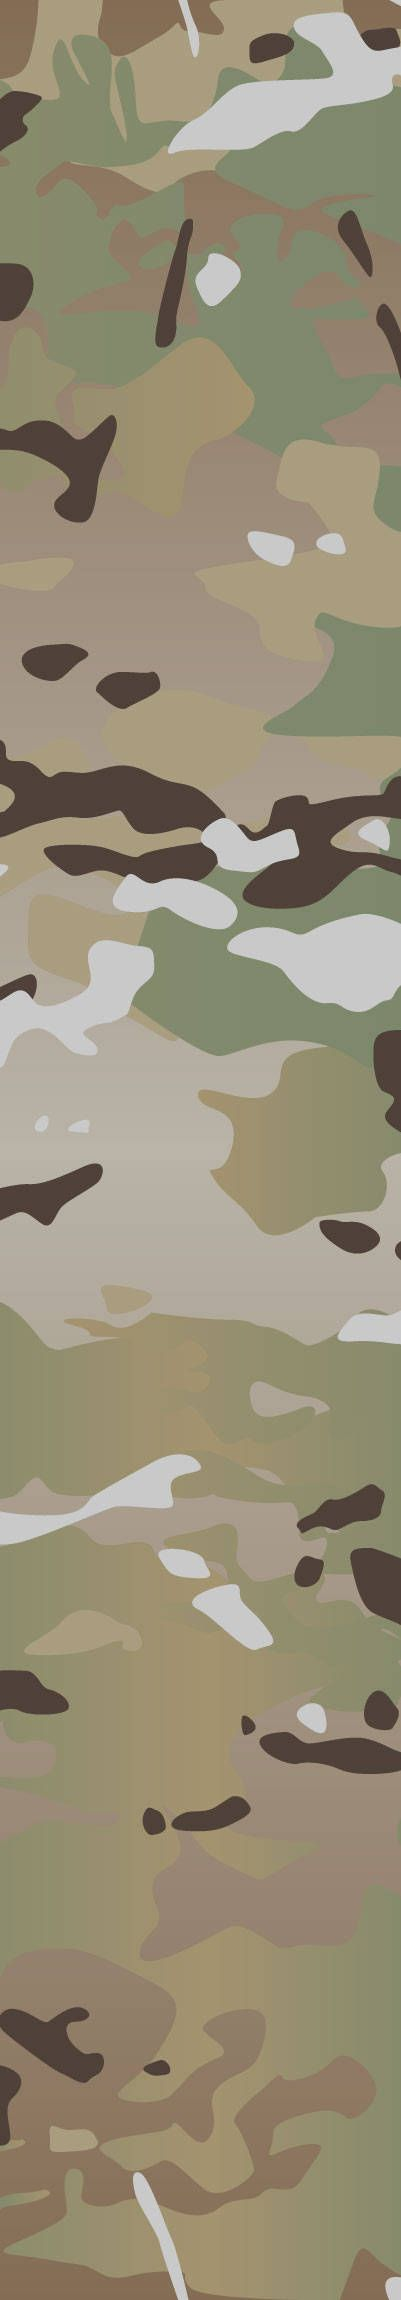 Original full-size Multicam (scorpion) camouflage pattern for print.  Copy of legendary camo pattern in vector ready-to-print format. You can zoom it for any size without quality lose.  Handly created in Photoshop and Illustrator and tested for vector errors.   #multicam #download #texture #pattern #camo #camouflage #mtp #scorpion #vector #military #arm